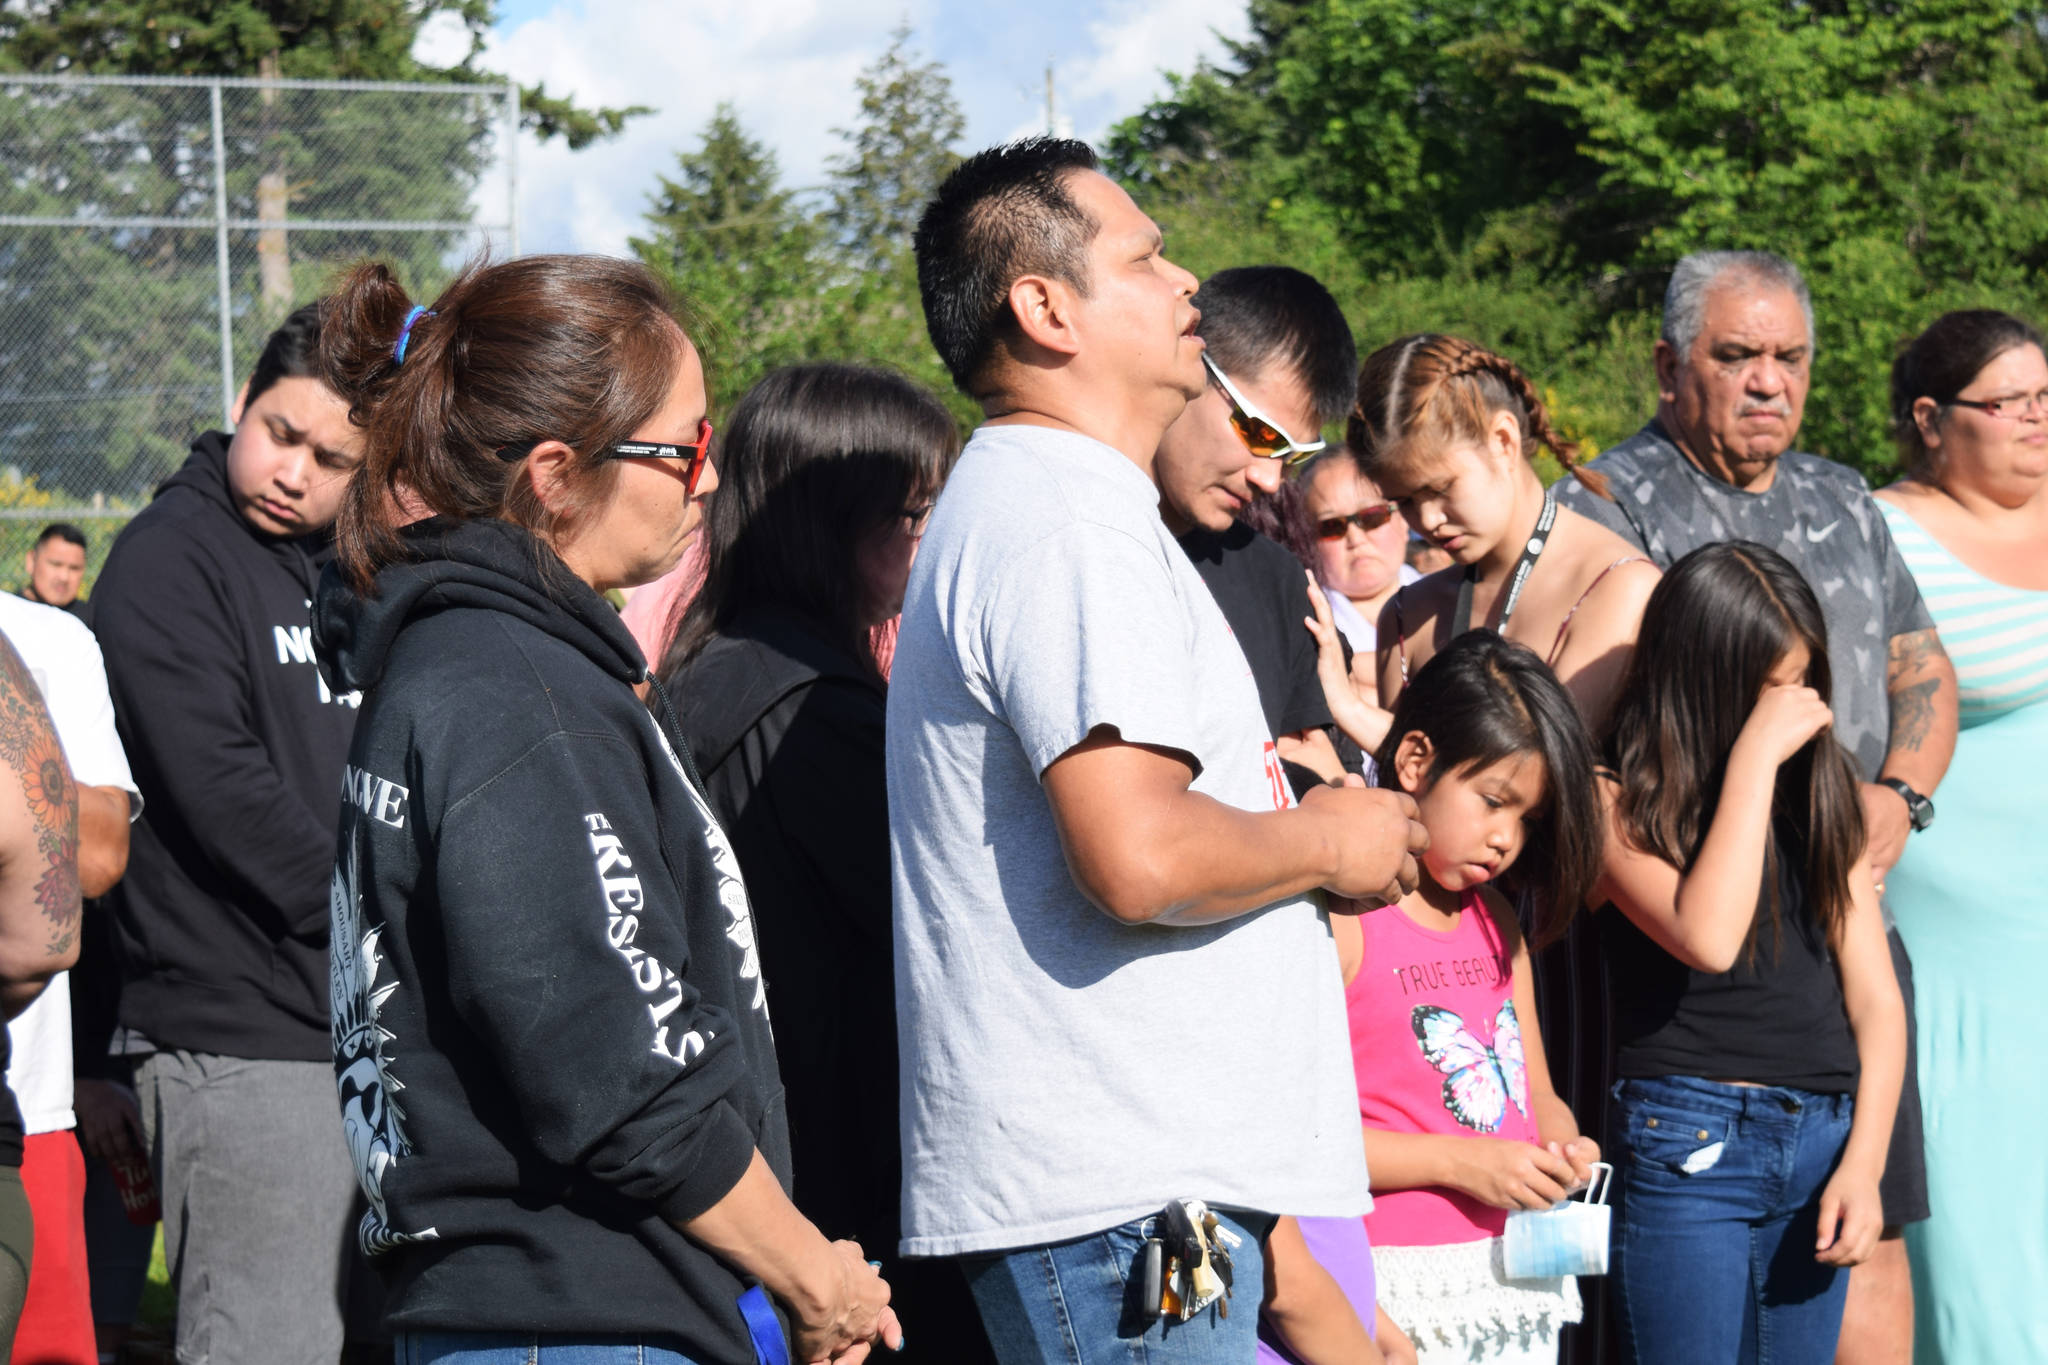 Kevin Titian (in white) speaks, remembering Chantel Moore, during a vigil at Haahuupayak School on Thursday, June 4. (ELENA RARDON / ALBERNI VALLEY NEWS)